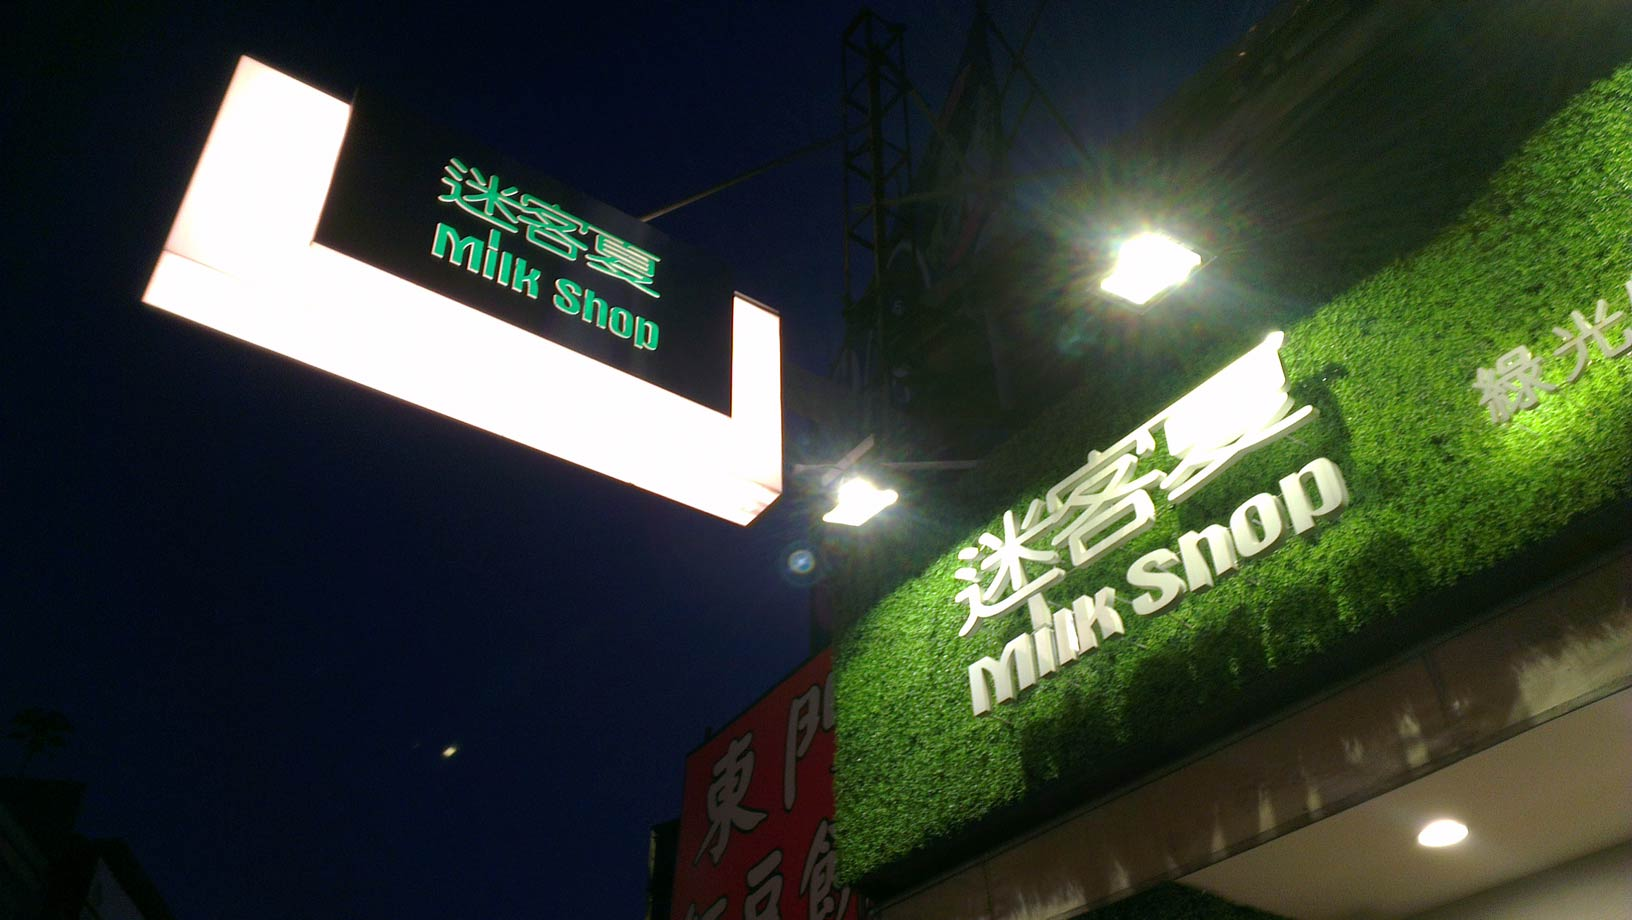 sign for a drinks store, labeled 'milk shop' in English and 'mi ke xia' in Chinese characters